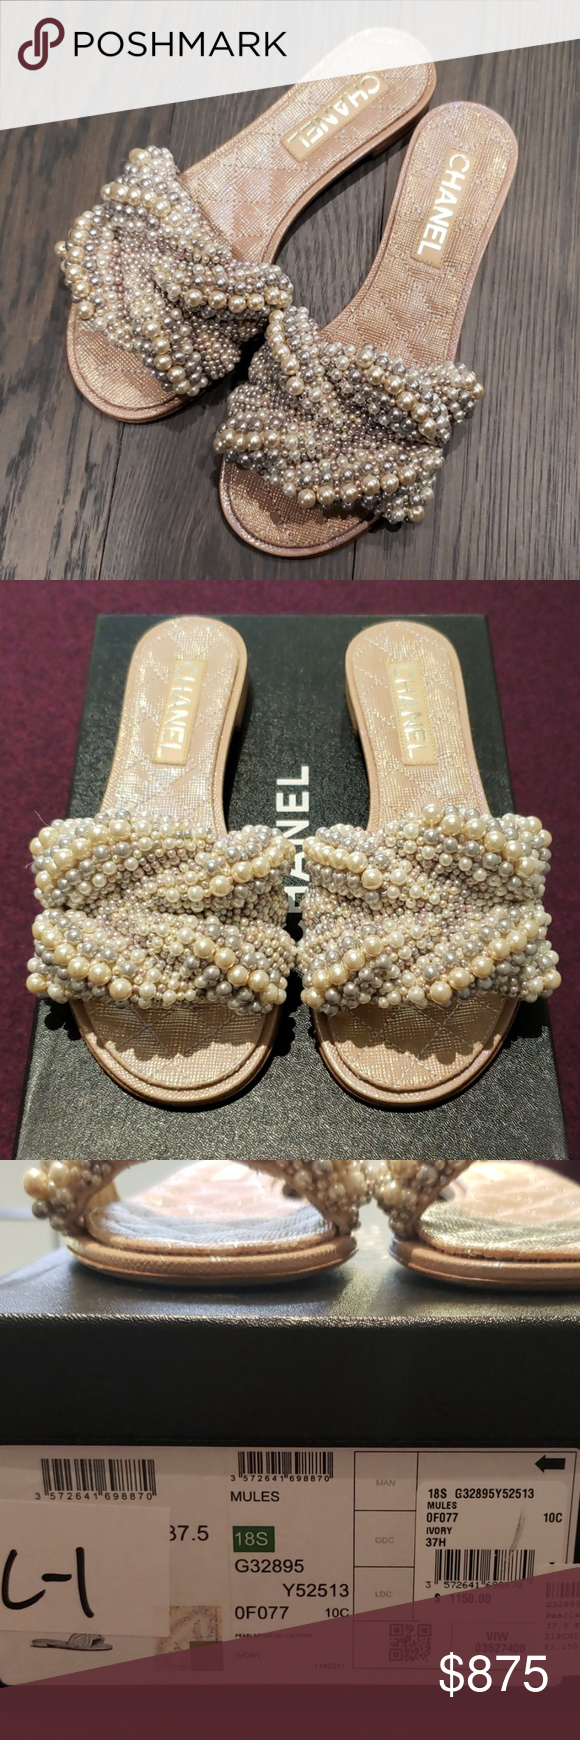 05fb2b179 Chanel Pearls Fantasy Mule sz 37.5 New in box Saks 5th Ivory color Really  gorgeous Authentic